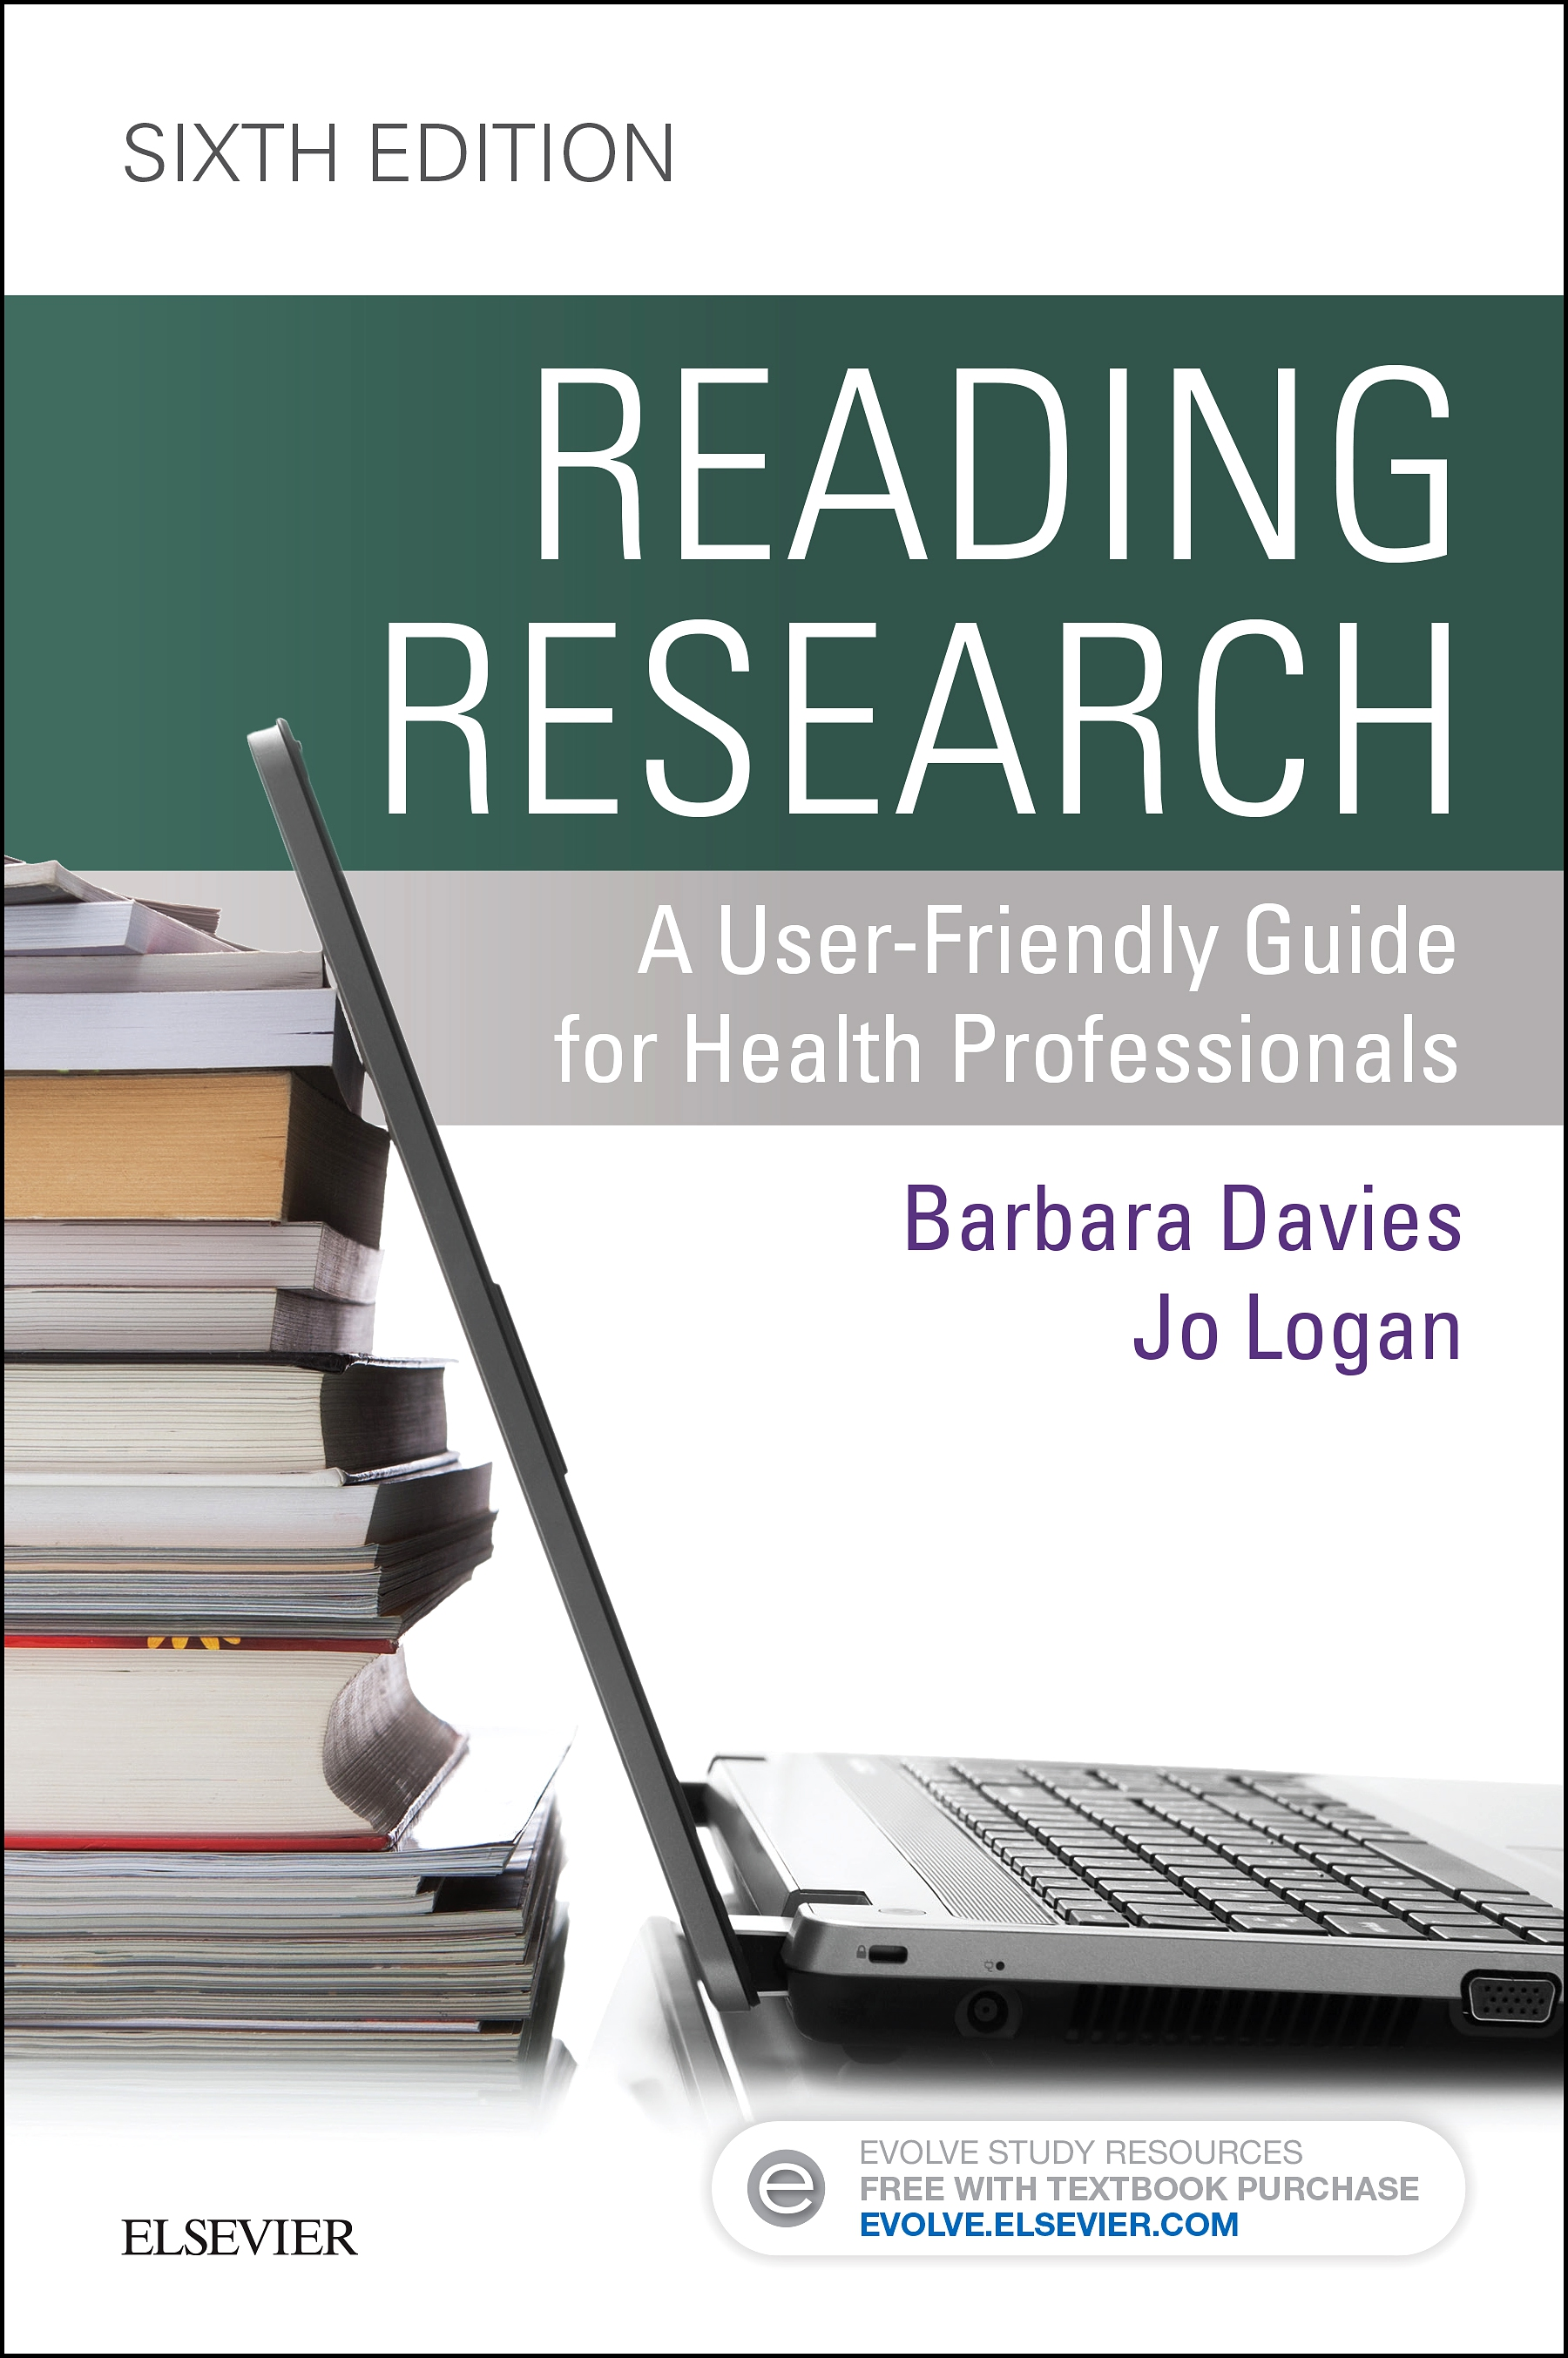 Evolve Resources for Reading Research, 6th Edition